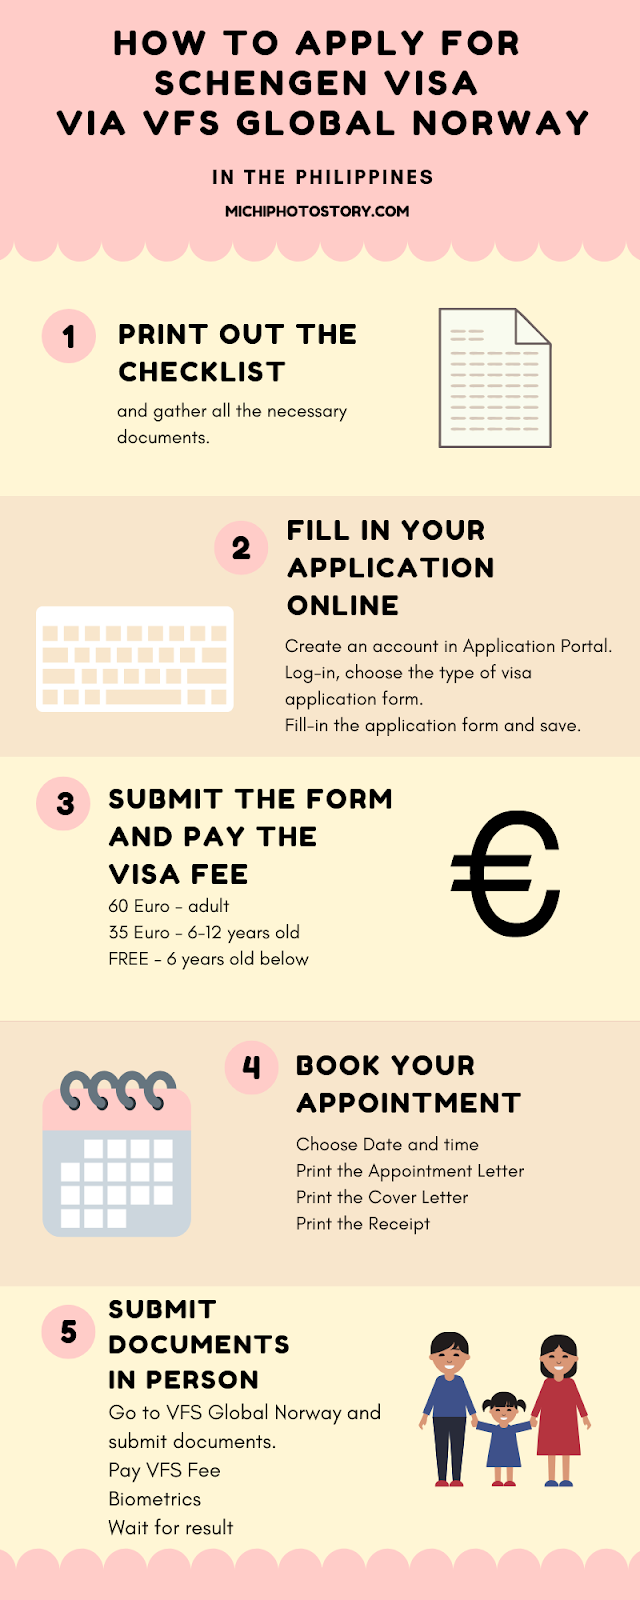 Michi Photostory: How to Apply for Schengen Visa for your